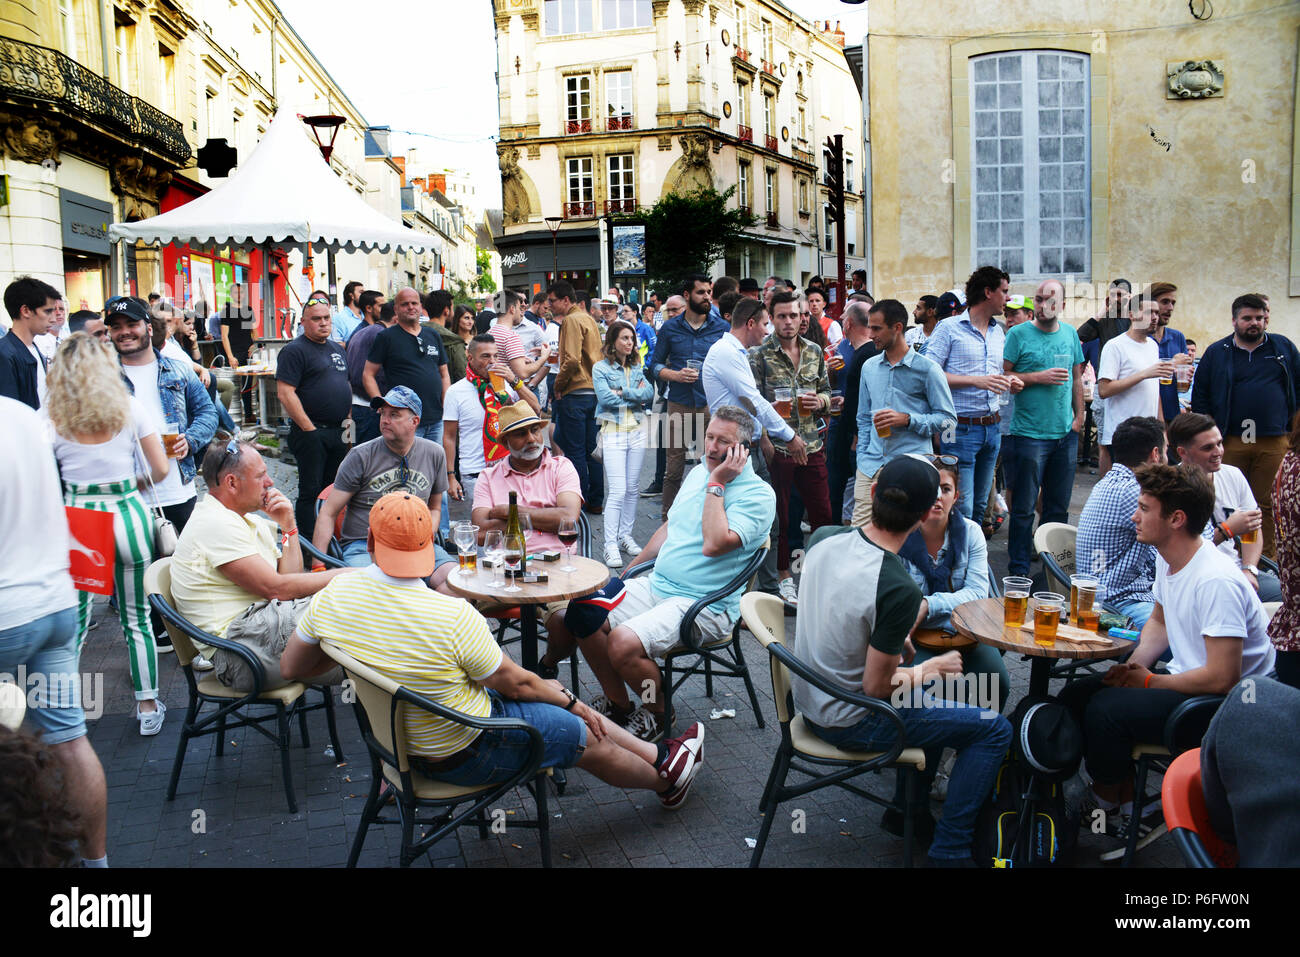 The 24 hours Car Race organisers hold a pre-race party in the town for all the local people and tourists as well as Race crews - Stock Image